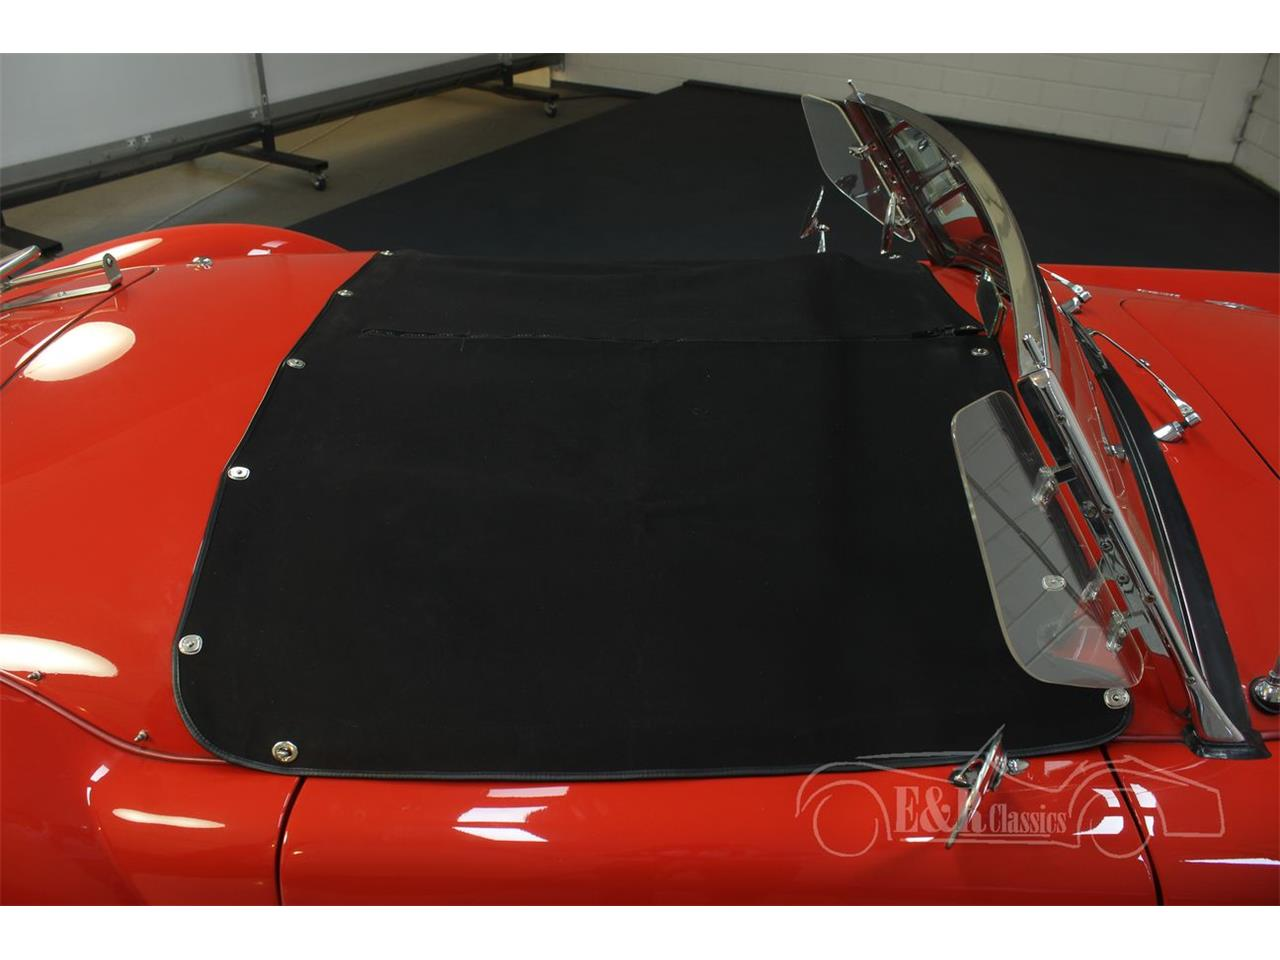 Large Picture of Classic 1962 MG MGA Offered by E & R Classics - QKGO